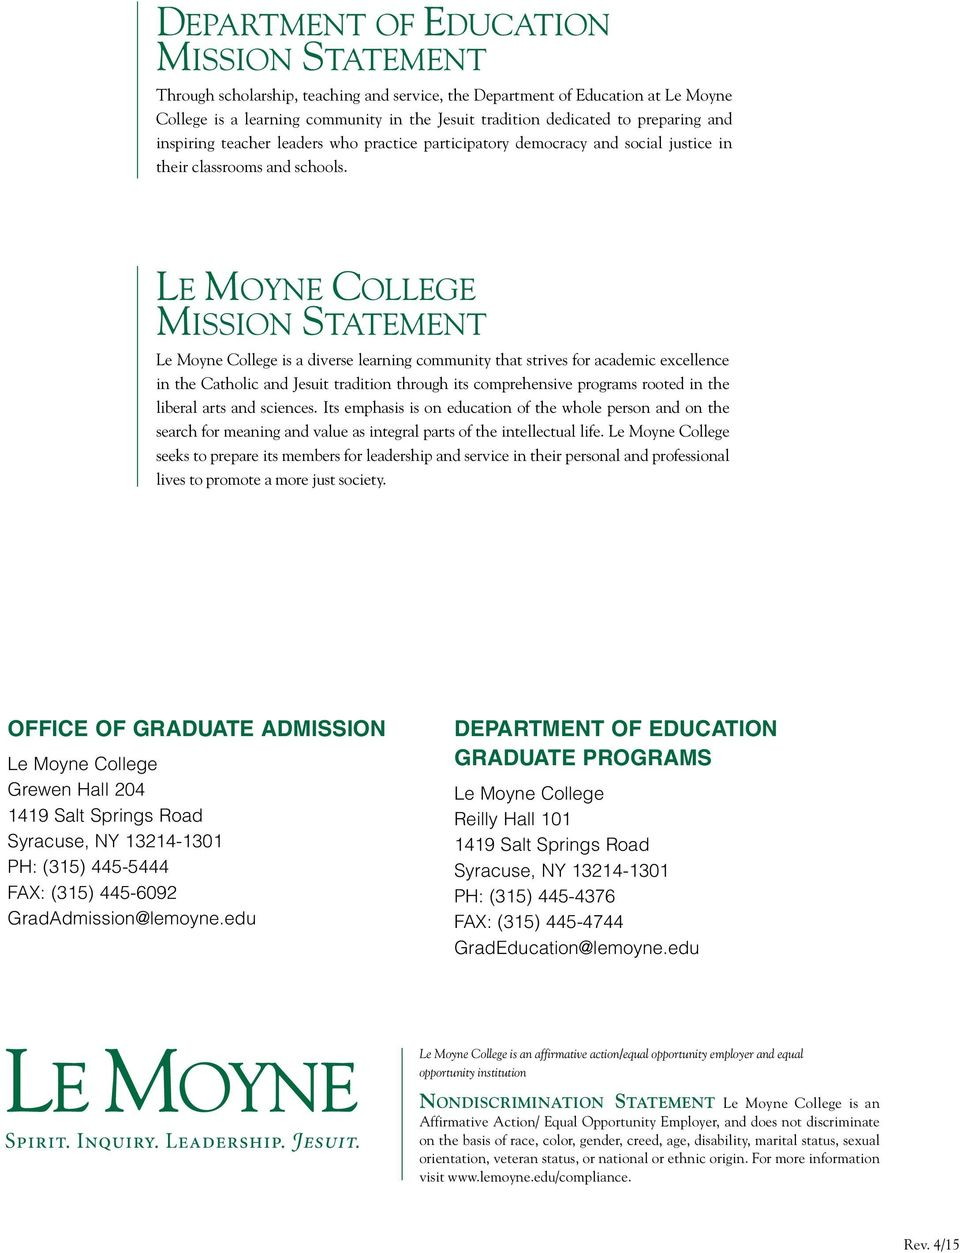 Le Moyne College Mission Statement Le Moyne College is a diverse learning community that strives for academic excellence in the Catholic and Jesuit tradition through its comprehensive programs rooted